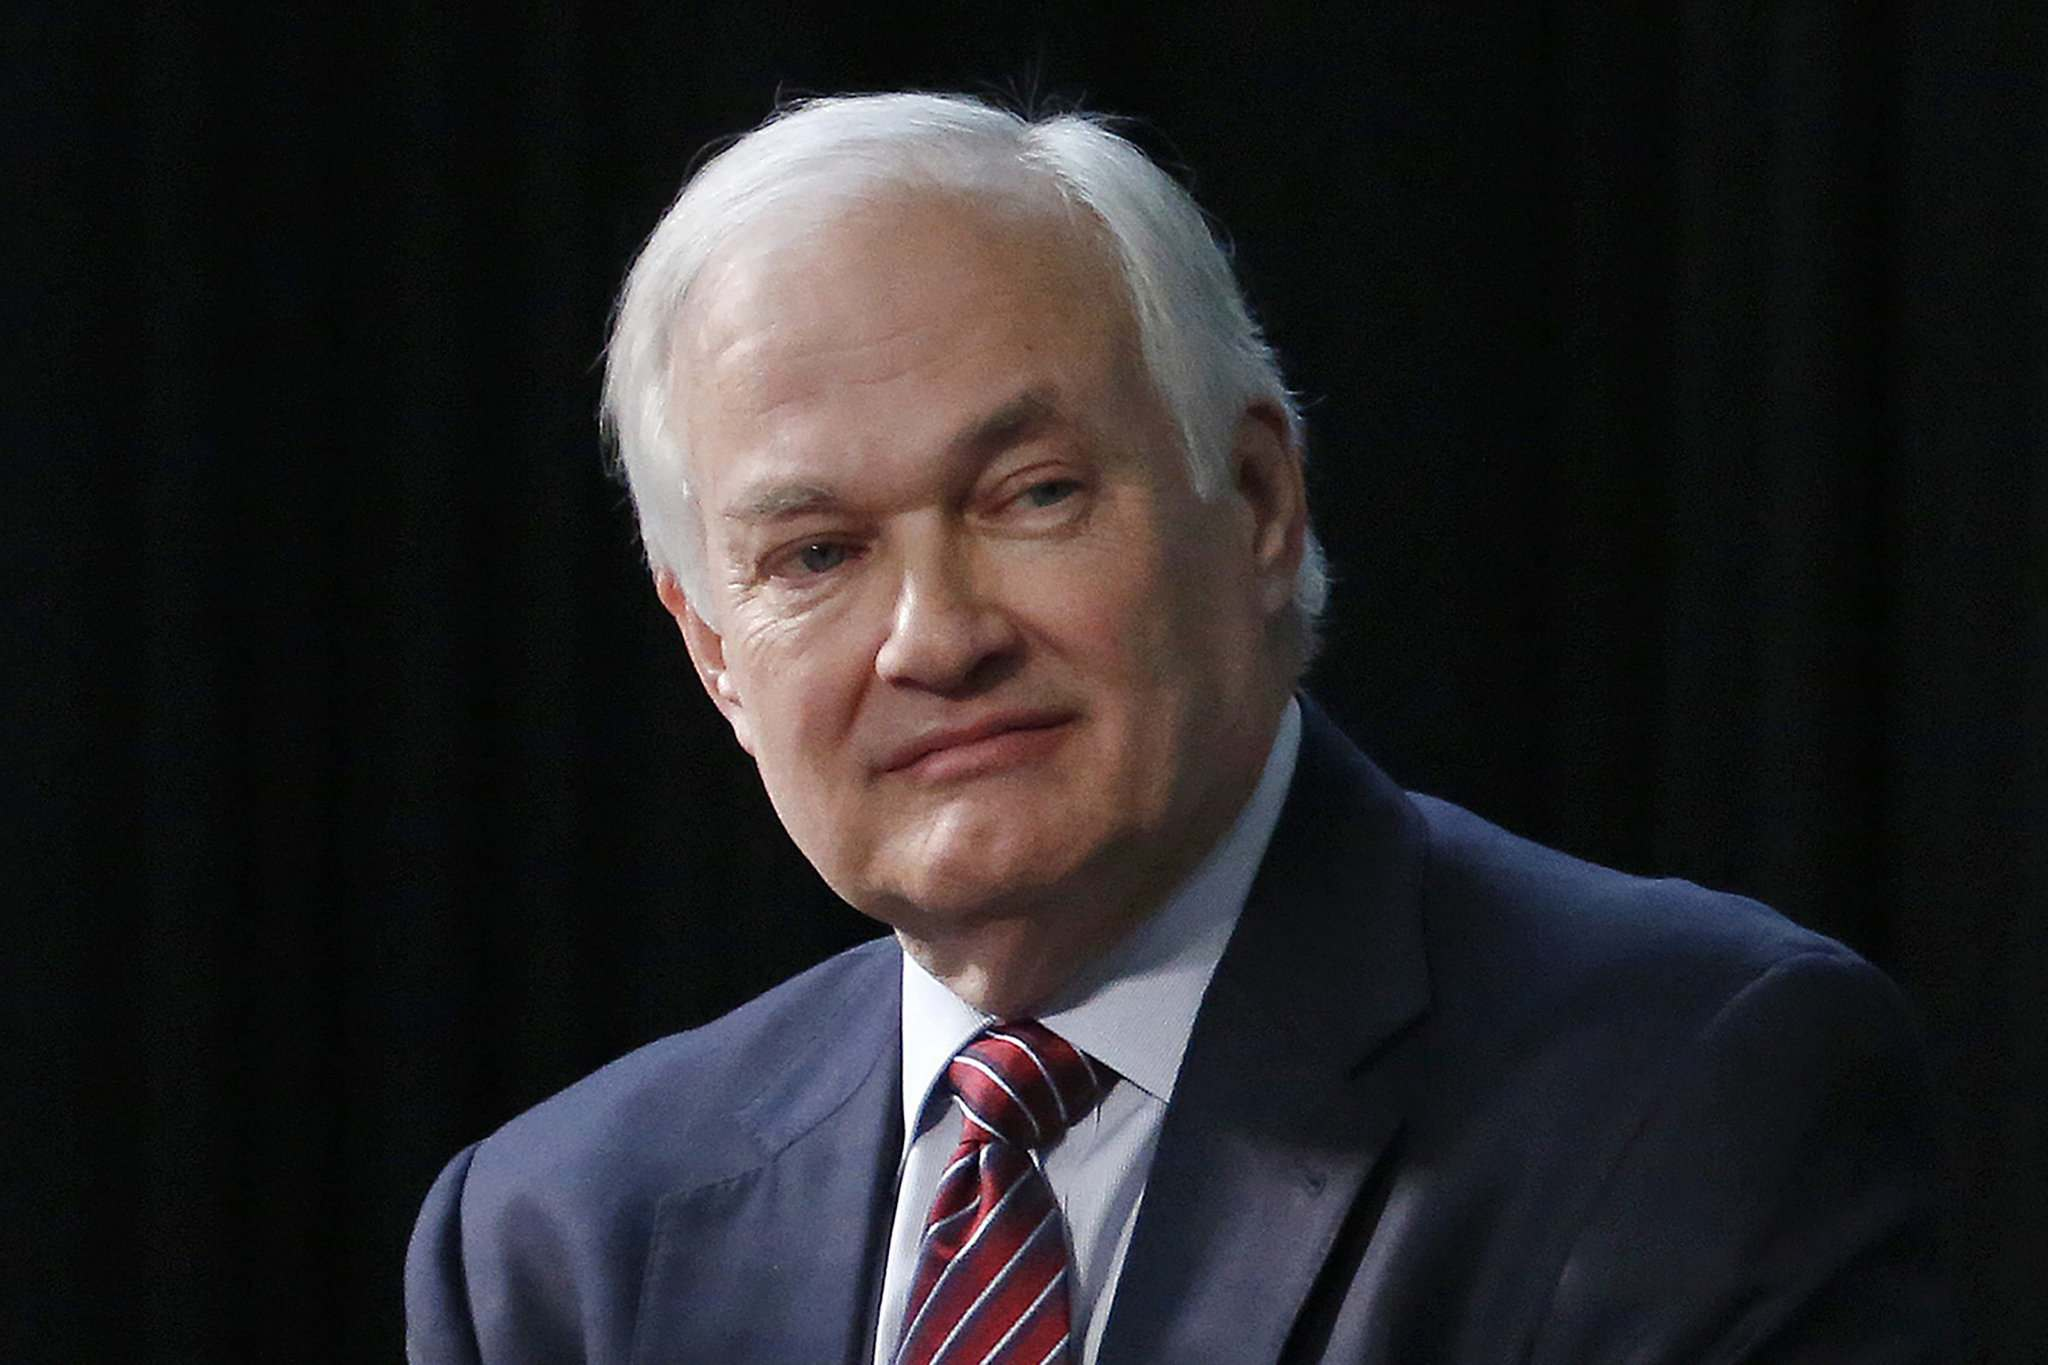 As part of the CBA, NHL Players' Association Executive Director Donald Fehr and the players agreed to put 20 per cent of their salary in escrow for the 2020-21 season, 14-18 per cent in 2021-22, 10 per cent in 2022-23, and six per cent for the remaining three seasons.